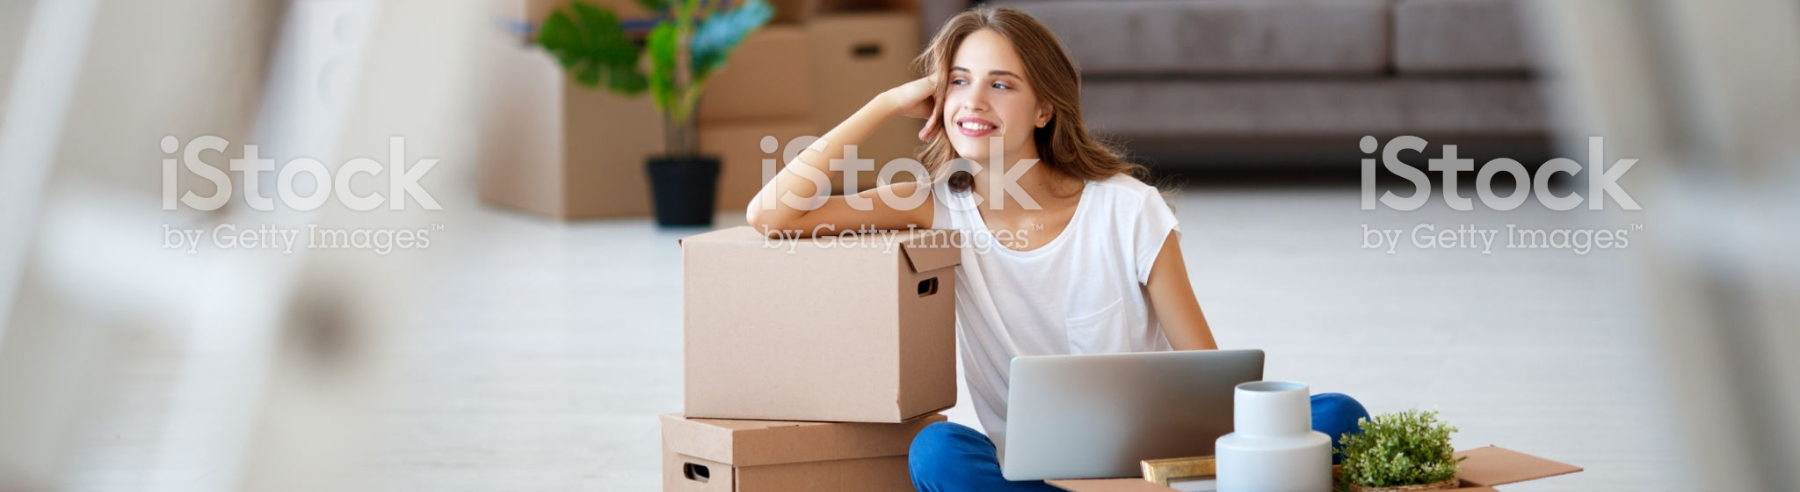 woman smiling leaning on box